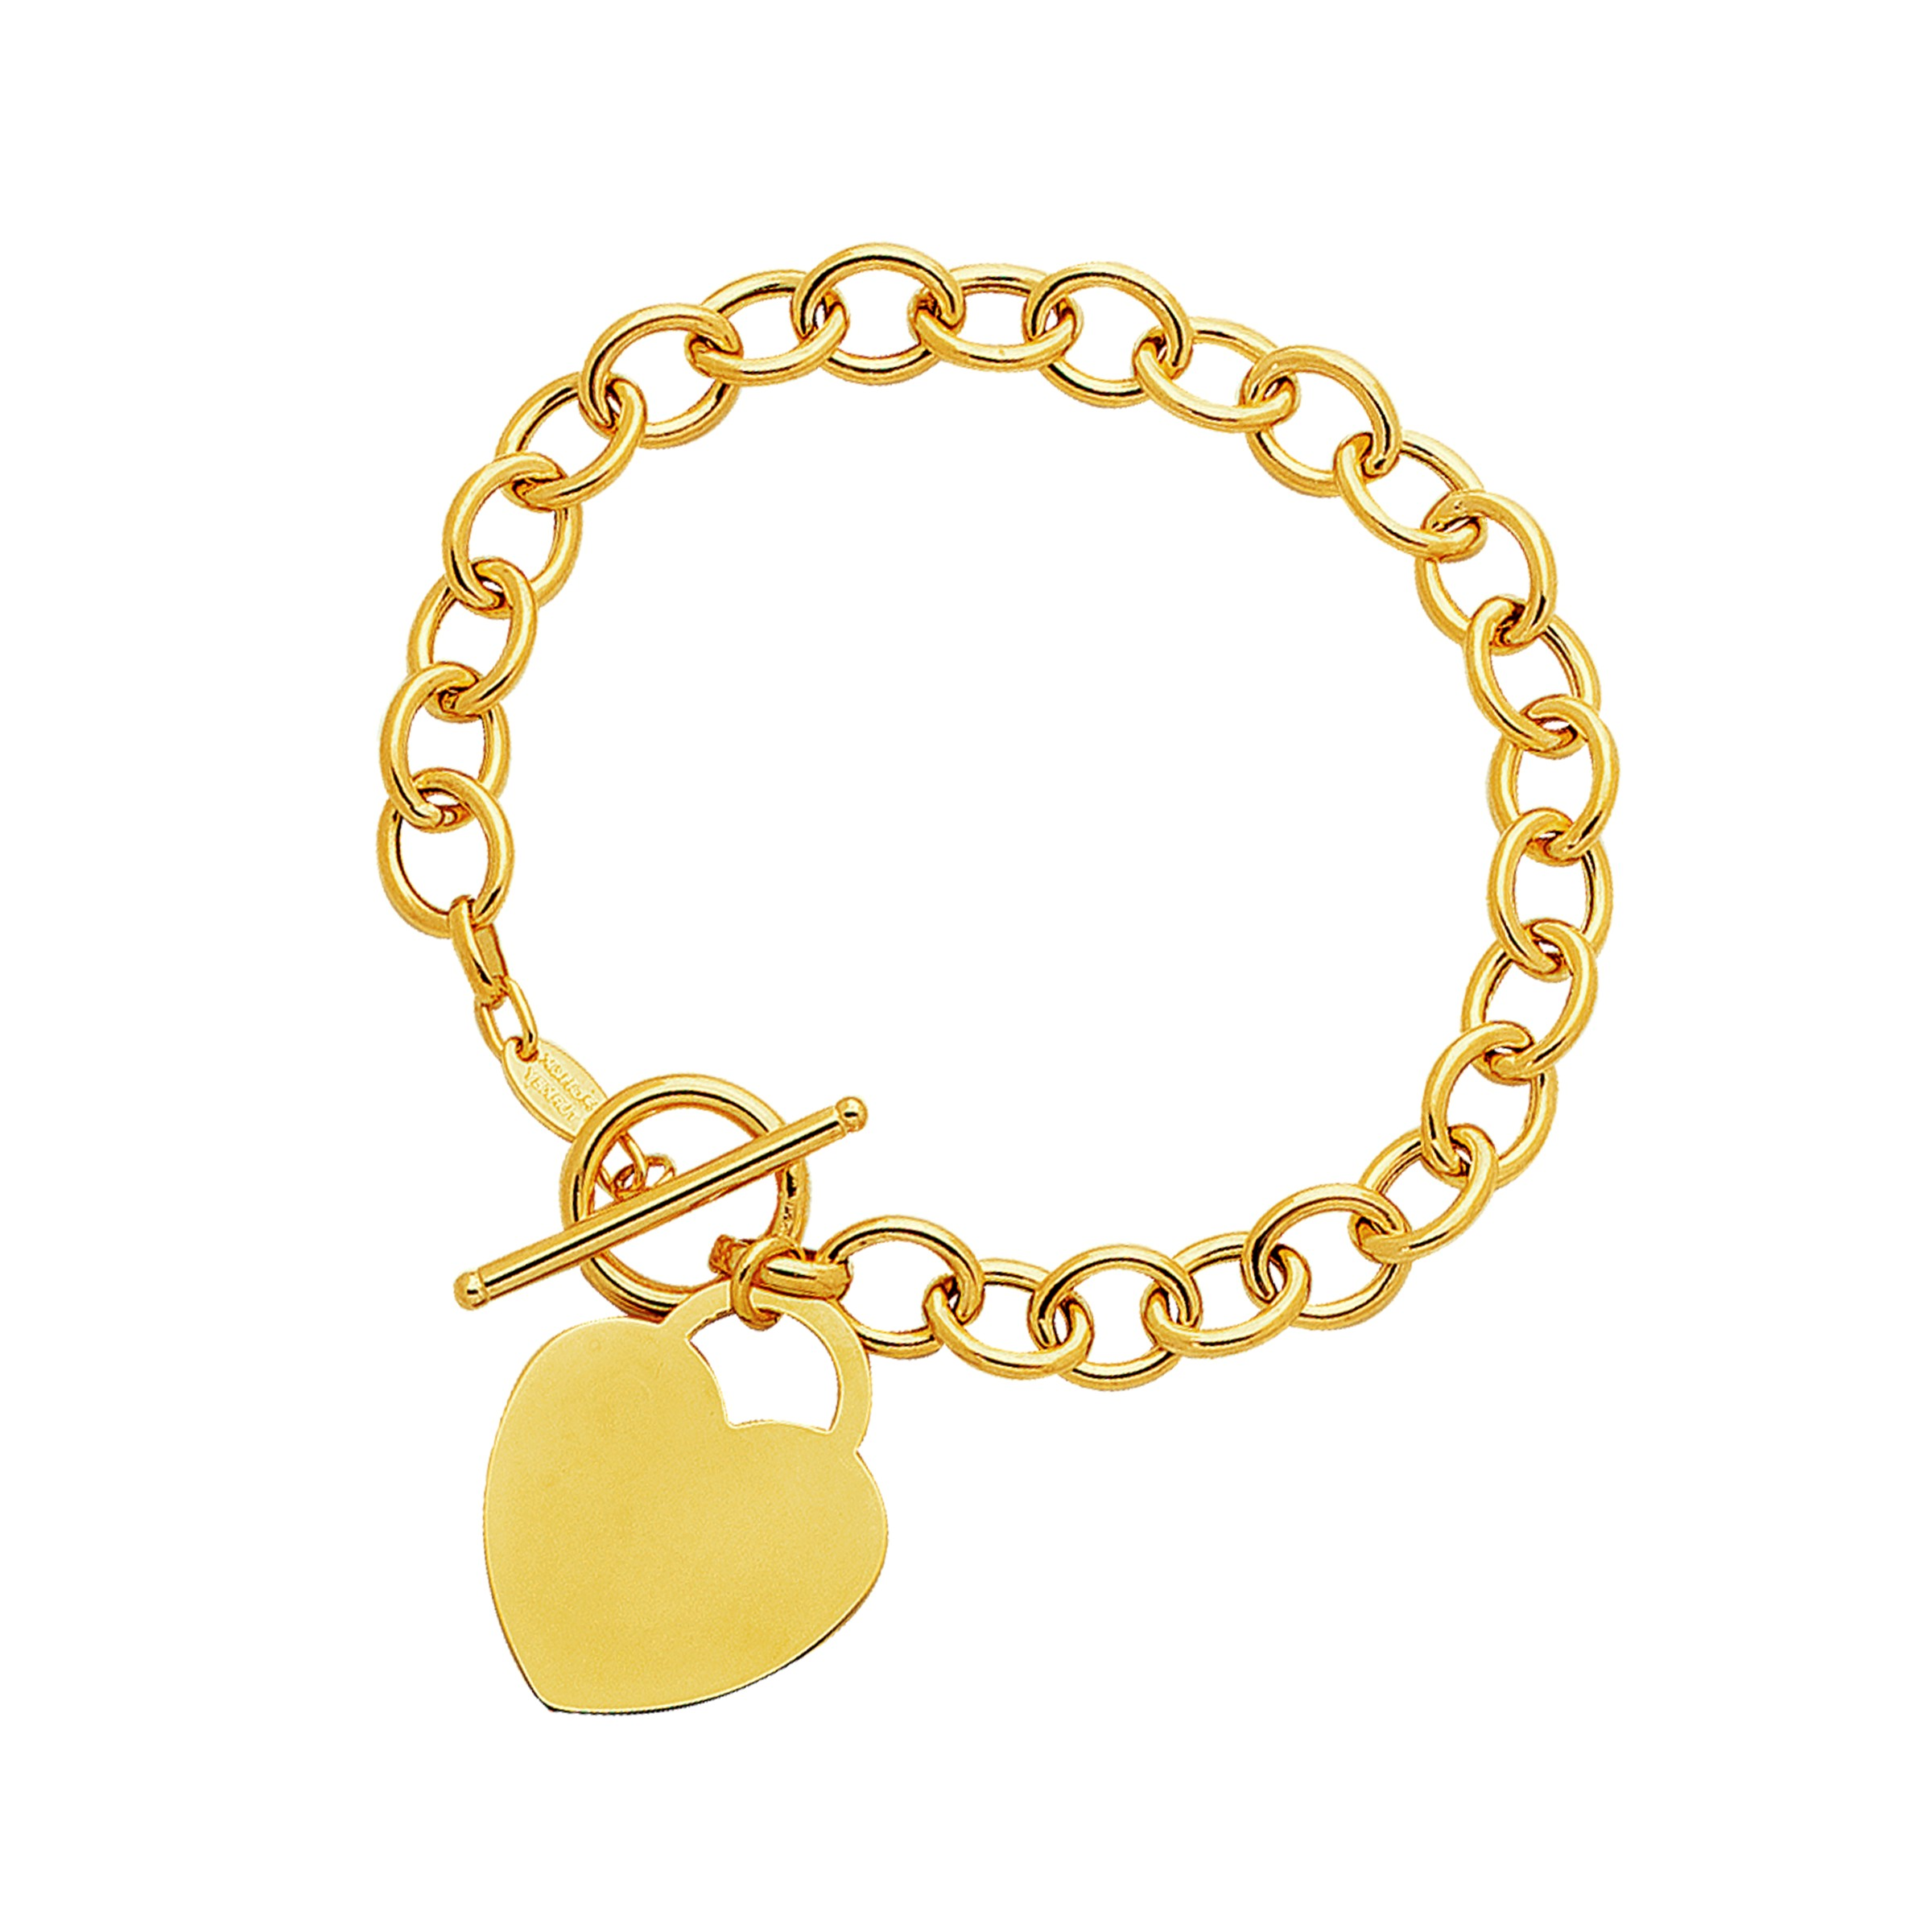 shoponline to and staging bracelet handrawn kitt kitts wrap here life s heart heres simply eartha gold